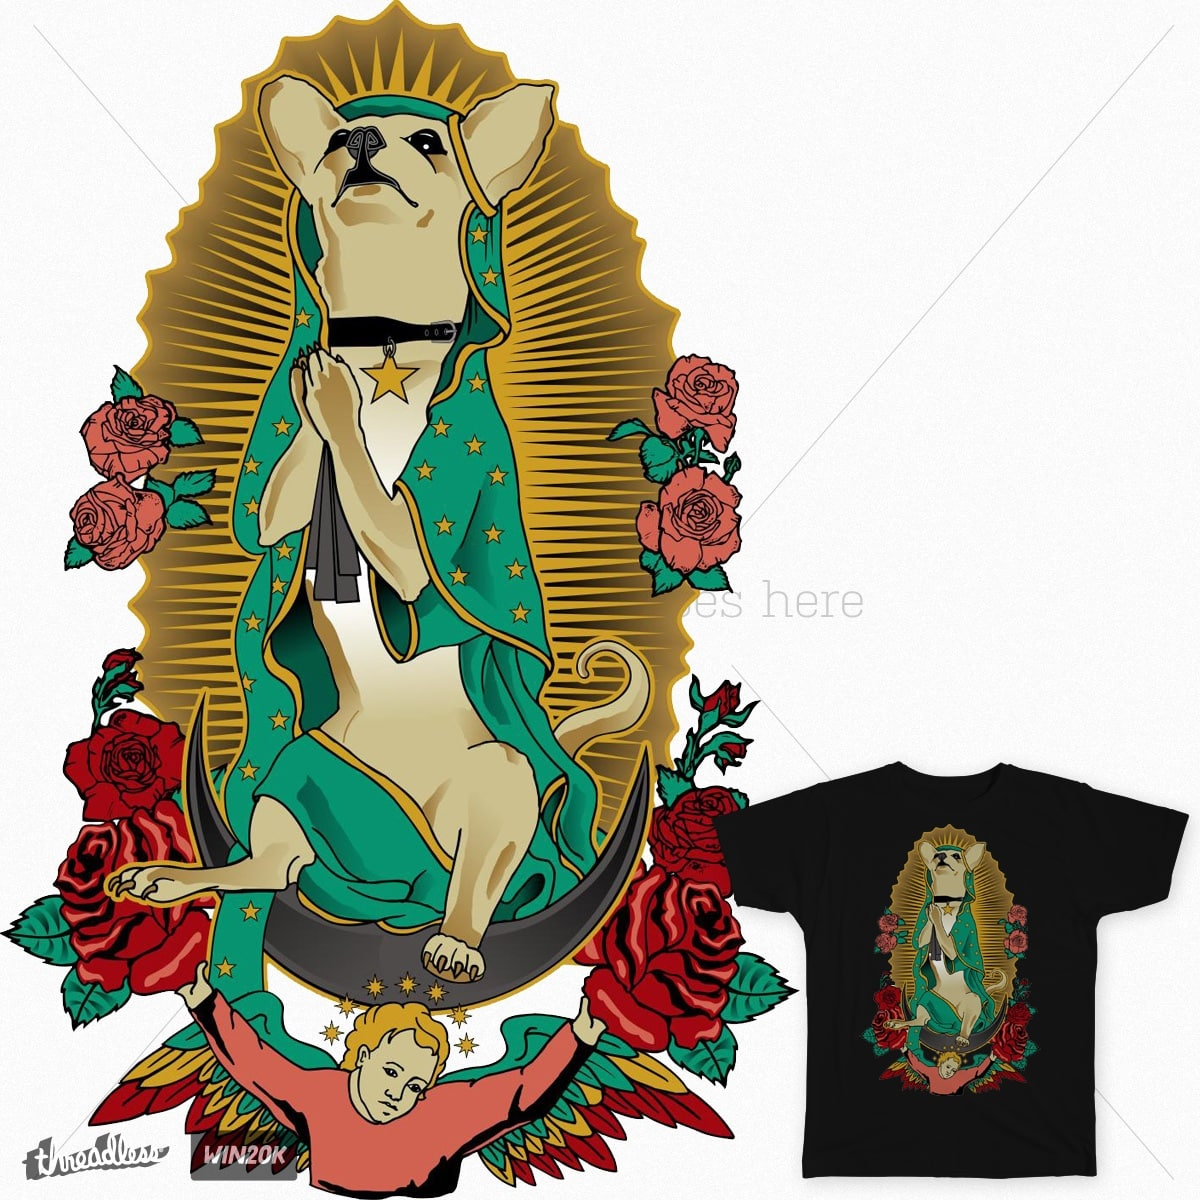 Our Lady of Guadapoochie by dianabeast on Threadless